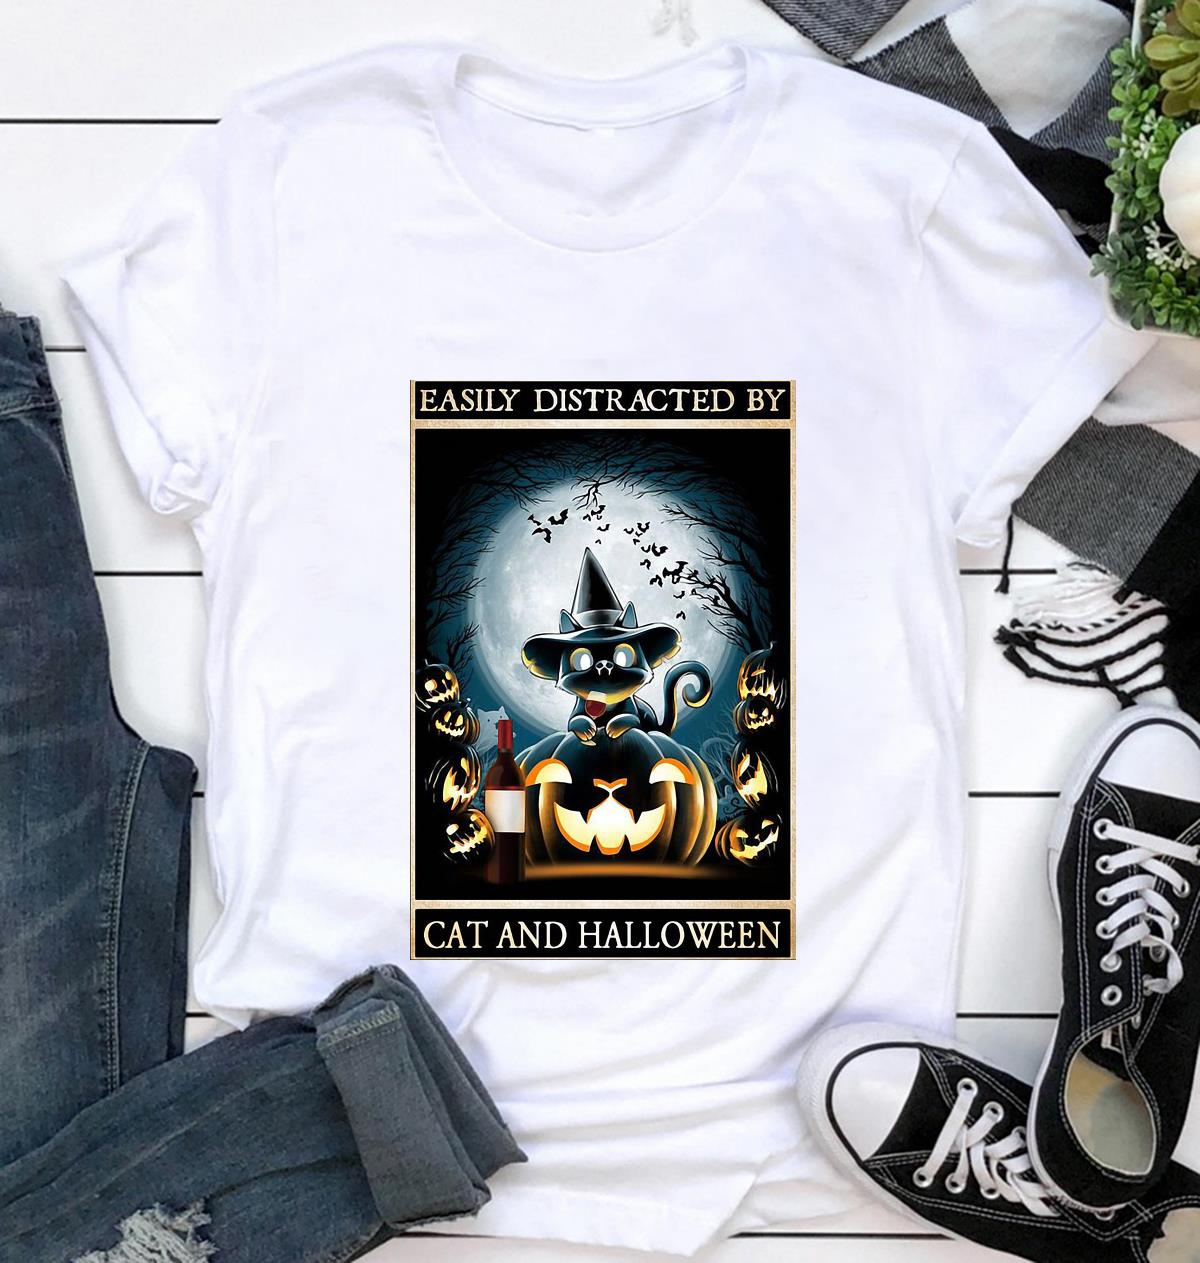 Easily distracted by cats and halloween poster t-shirt